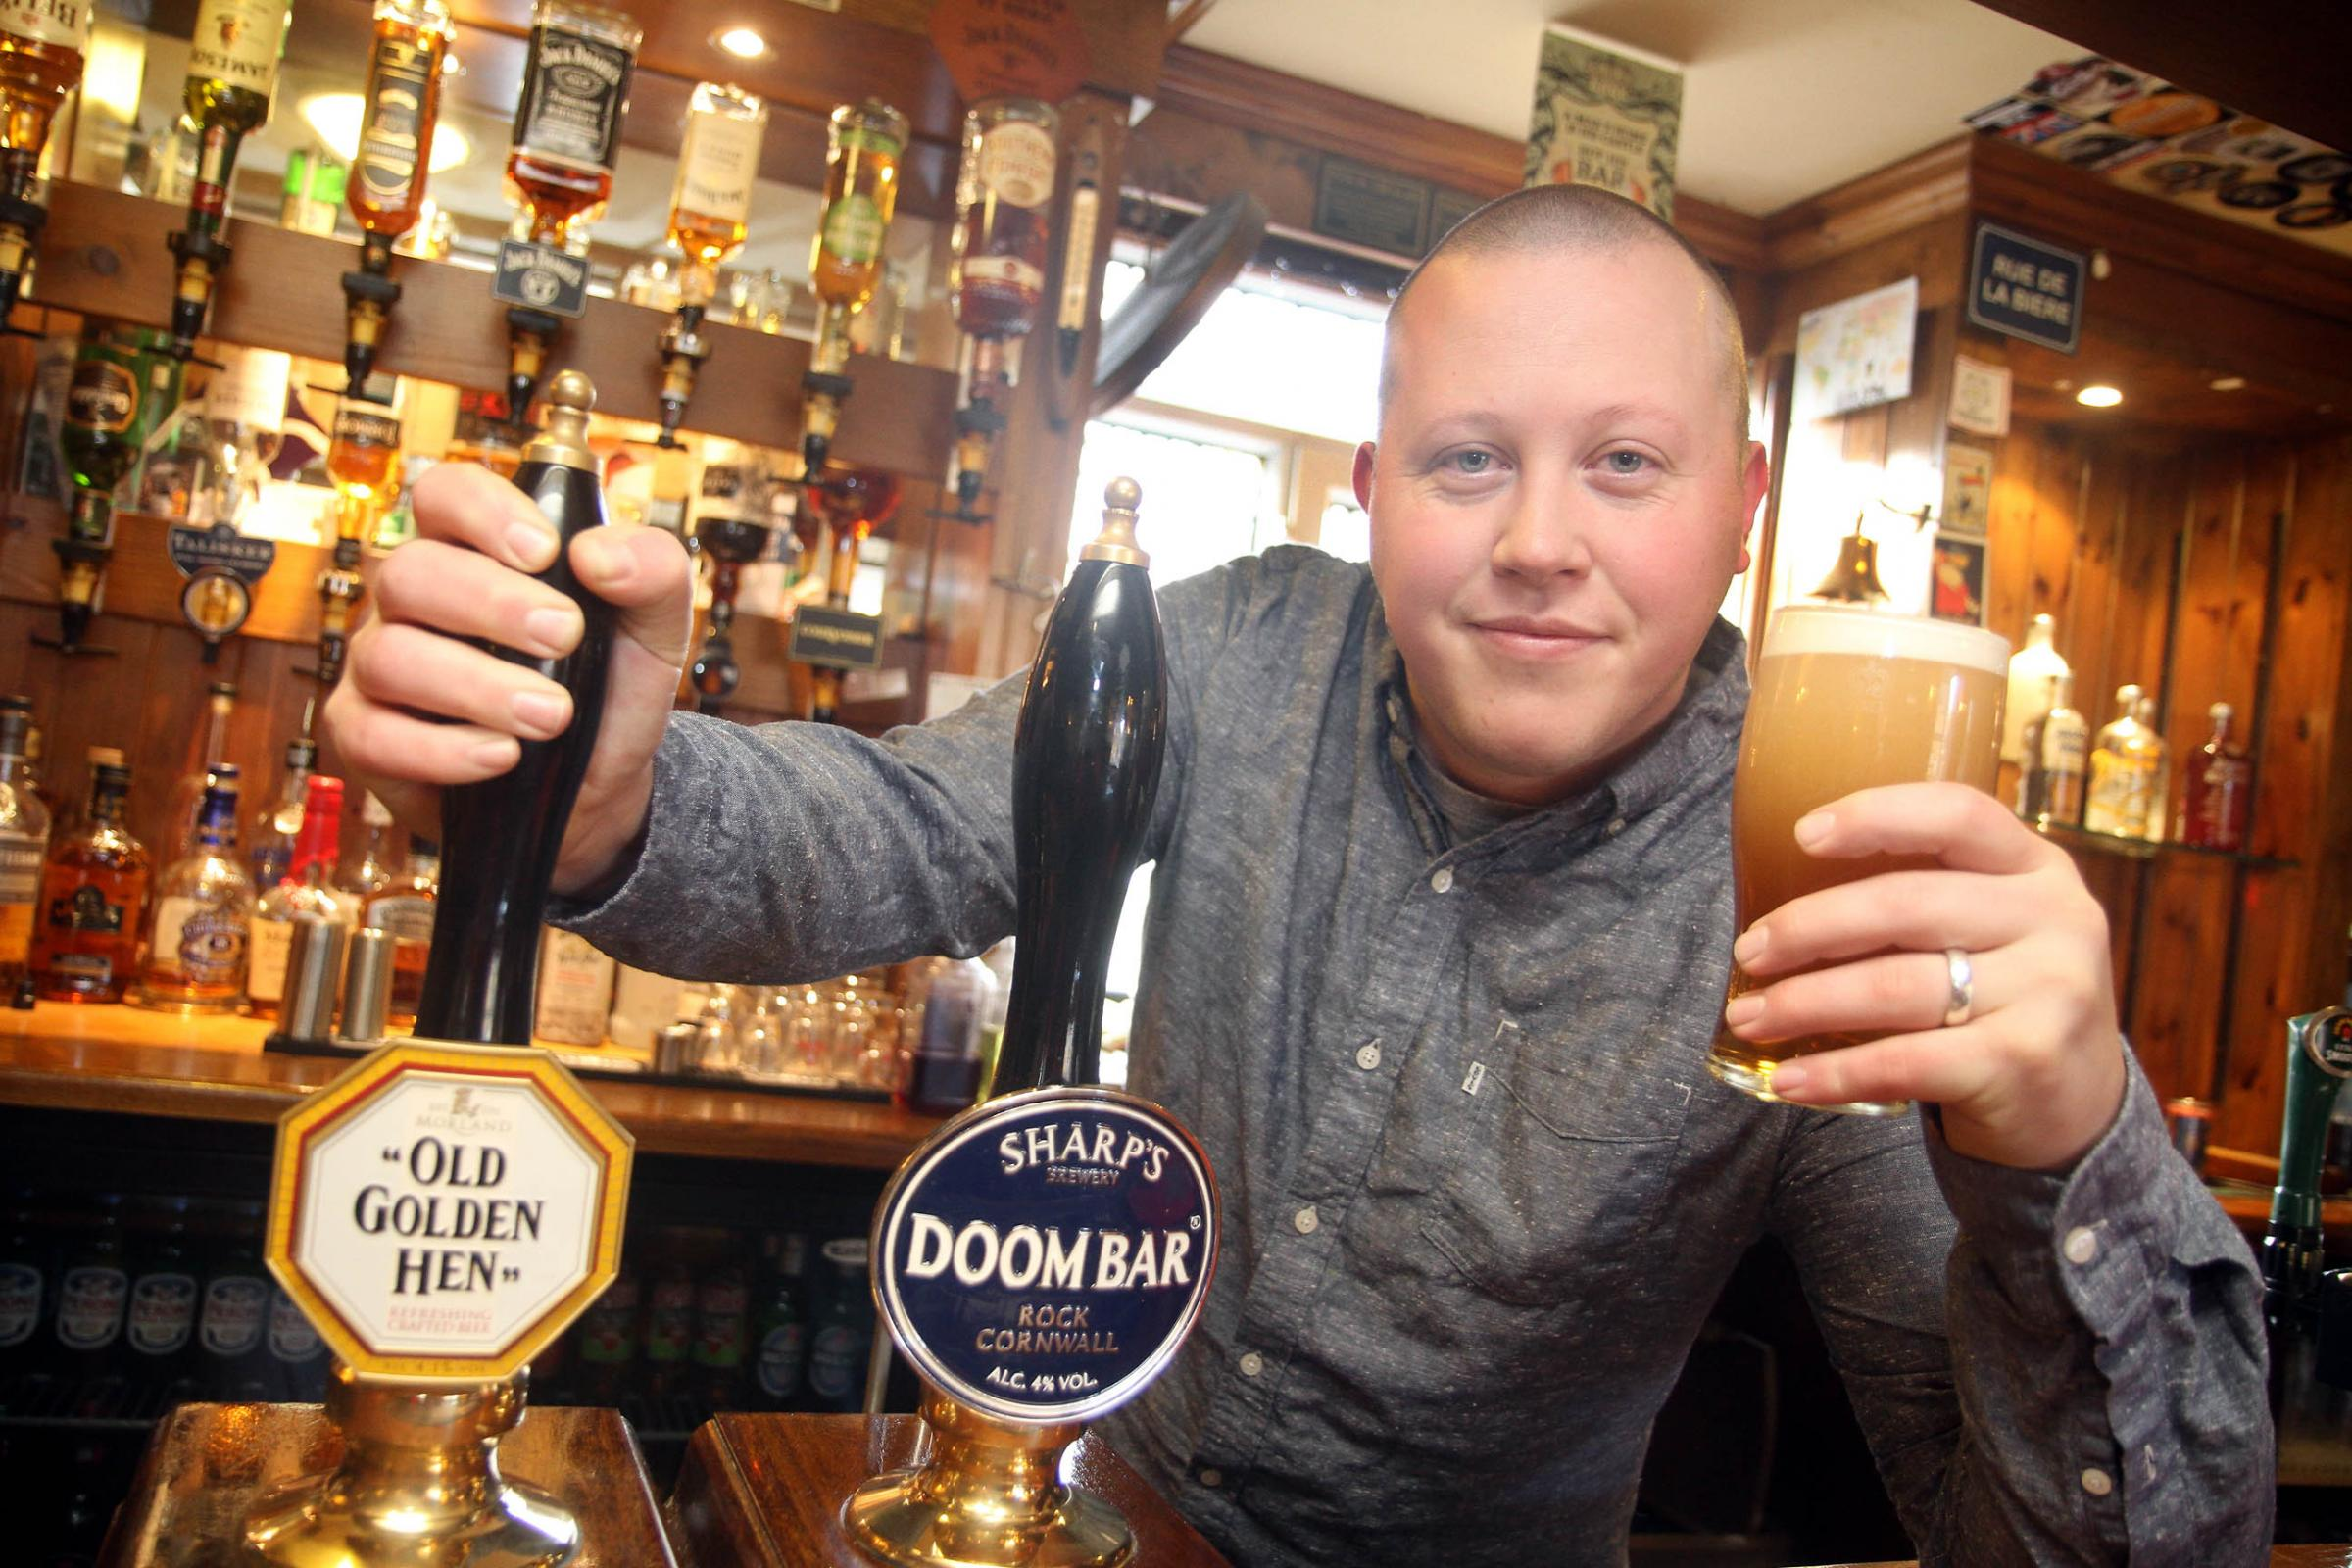 Jonathan Butterfield, of the    New Inn, Wilsden, who features in the CAMRA campaign